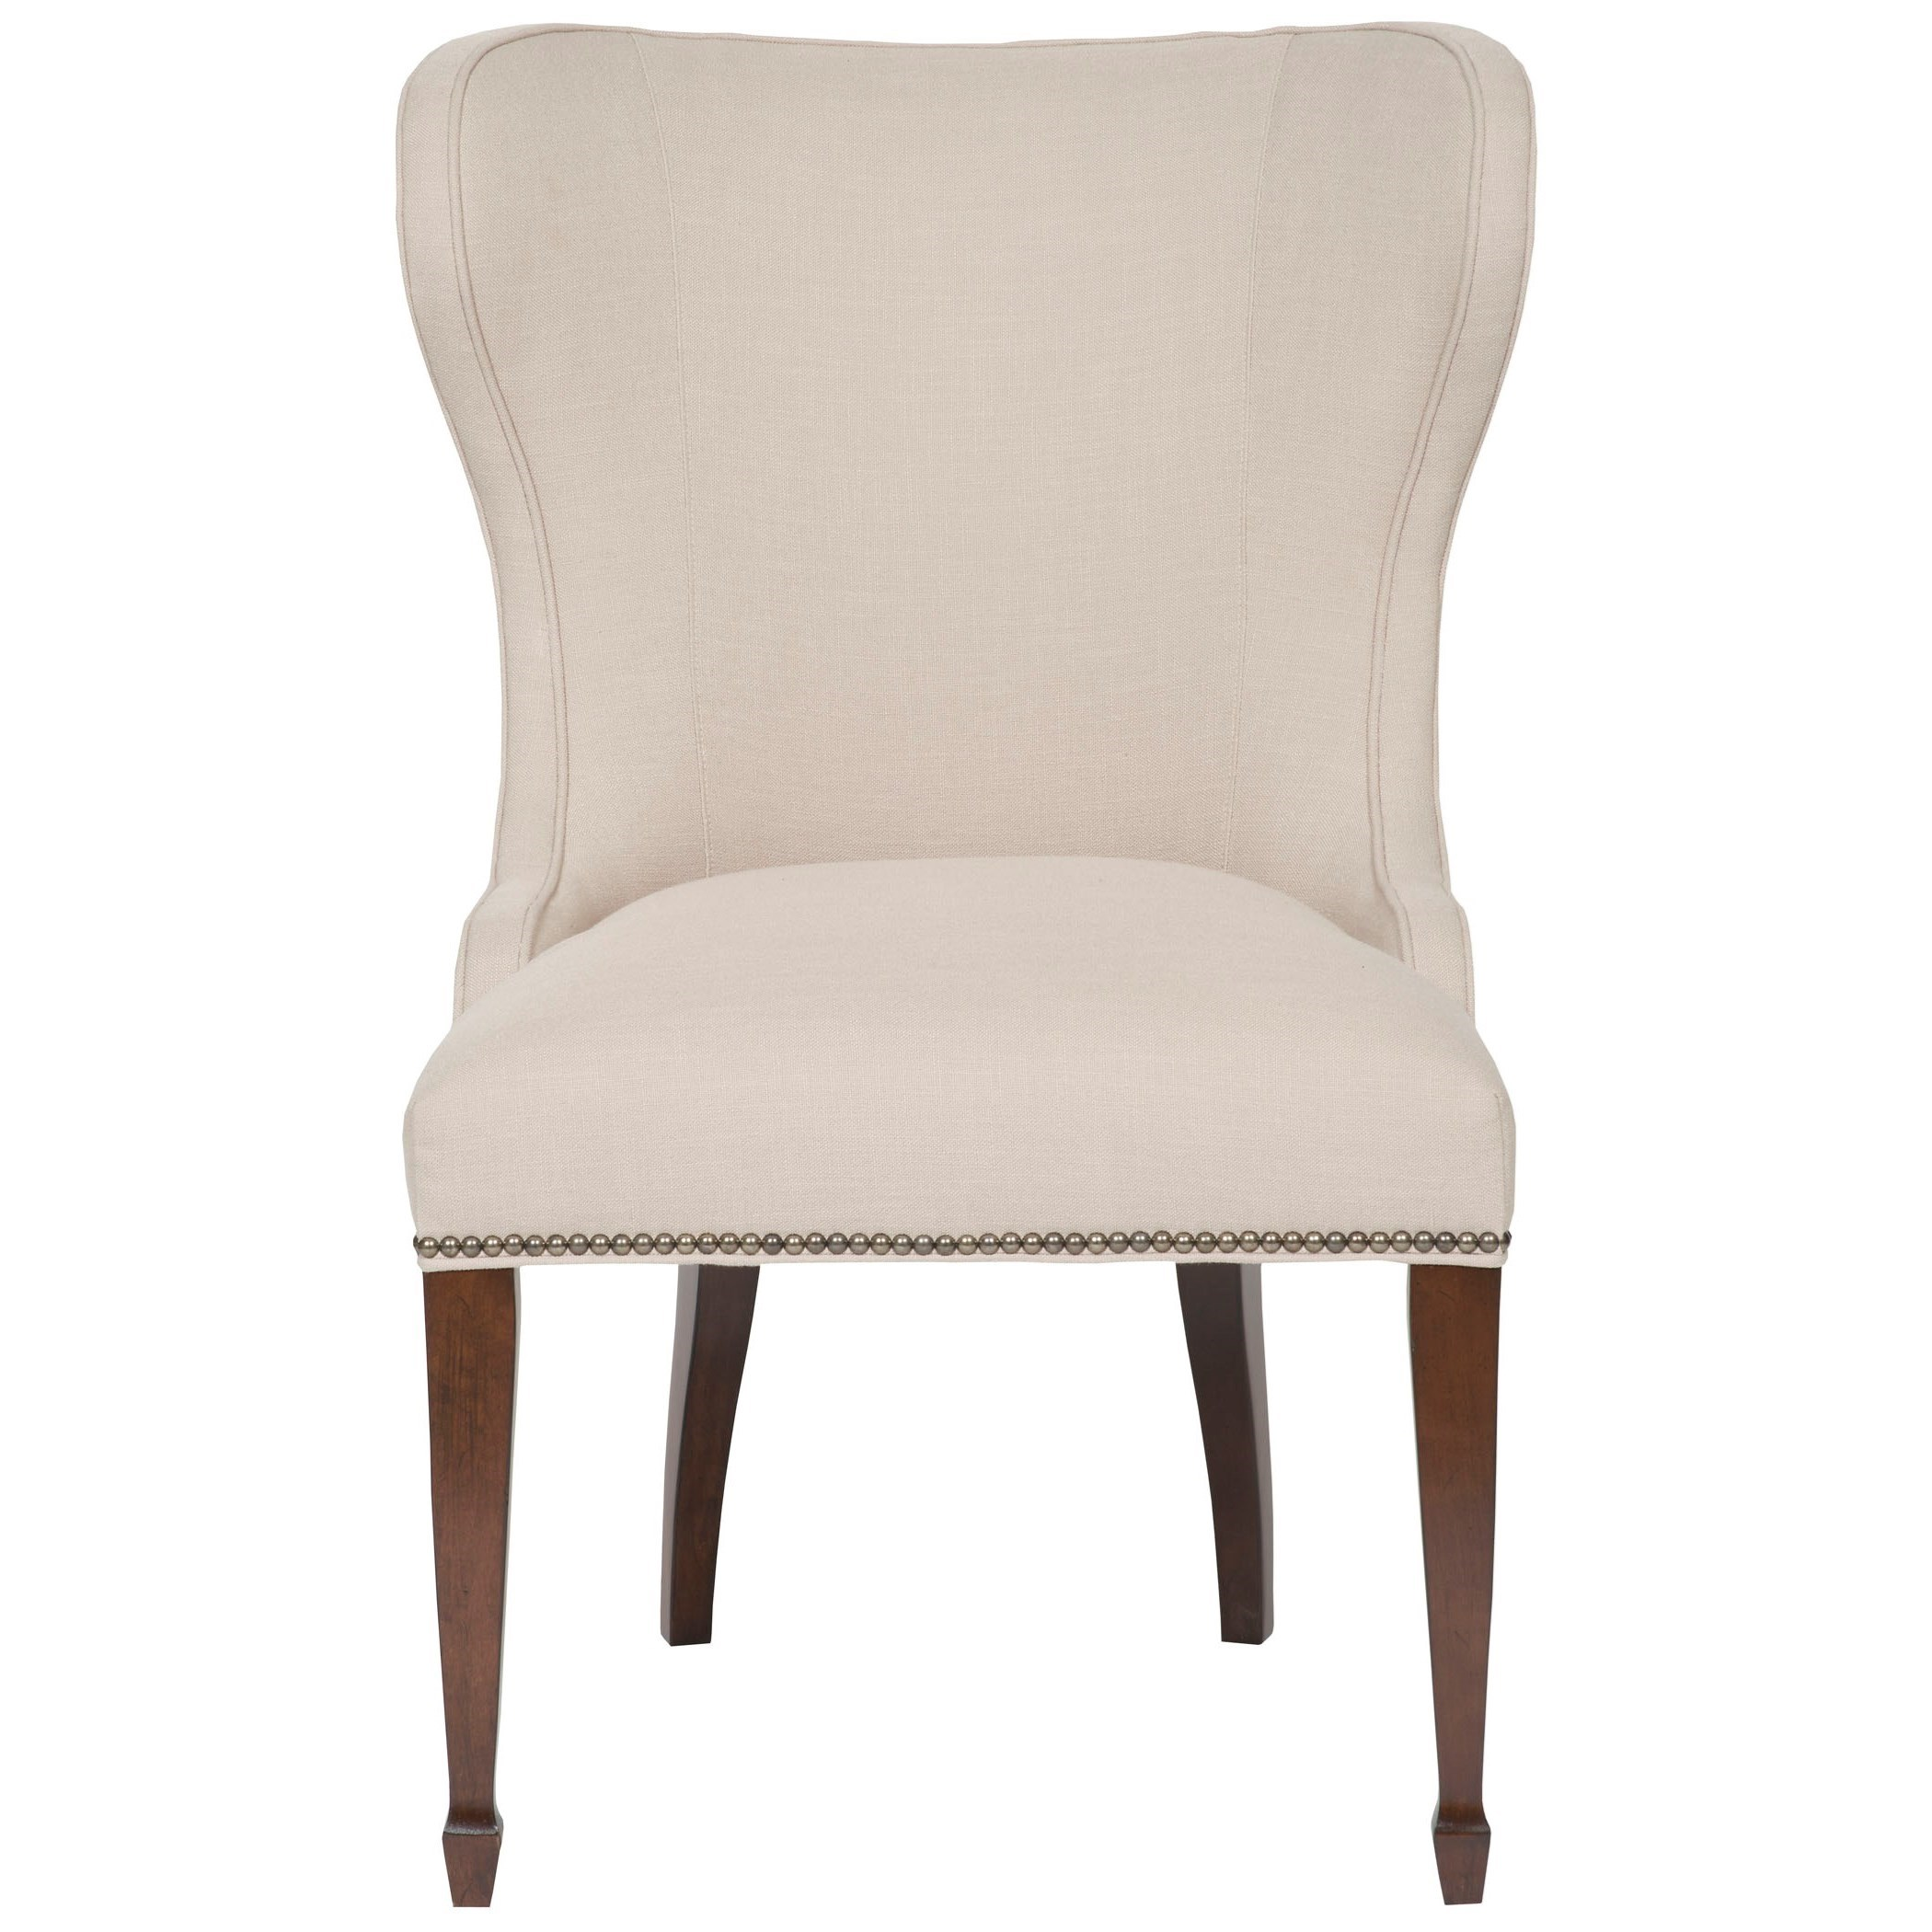 Accent Chairs Ava Side Chair by Vanguard Furniture at Sprintz Furniture